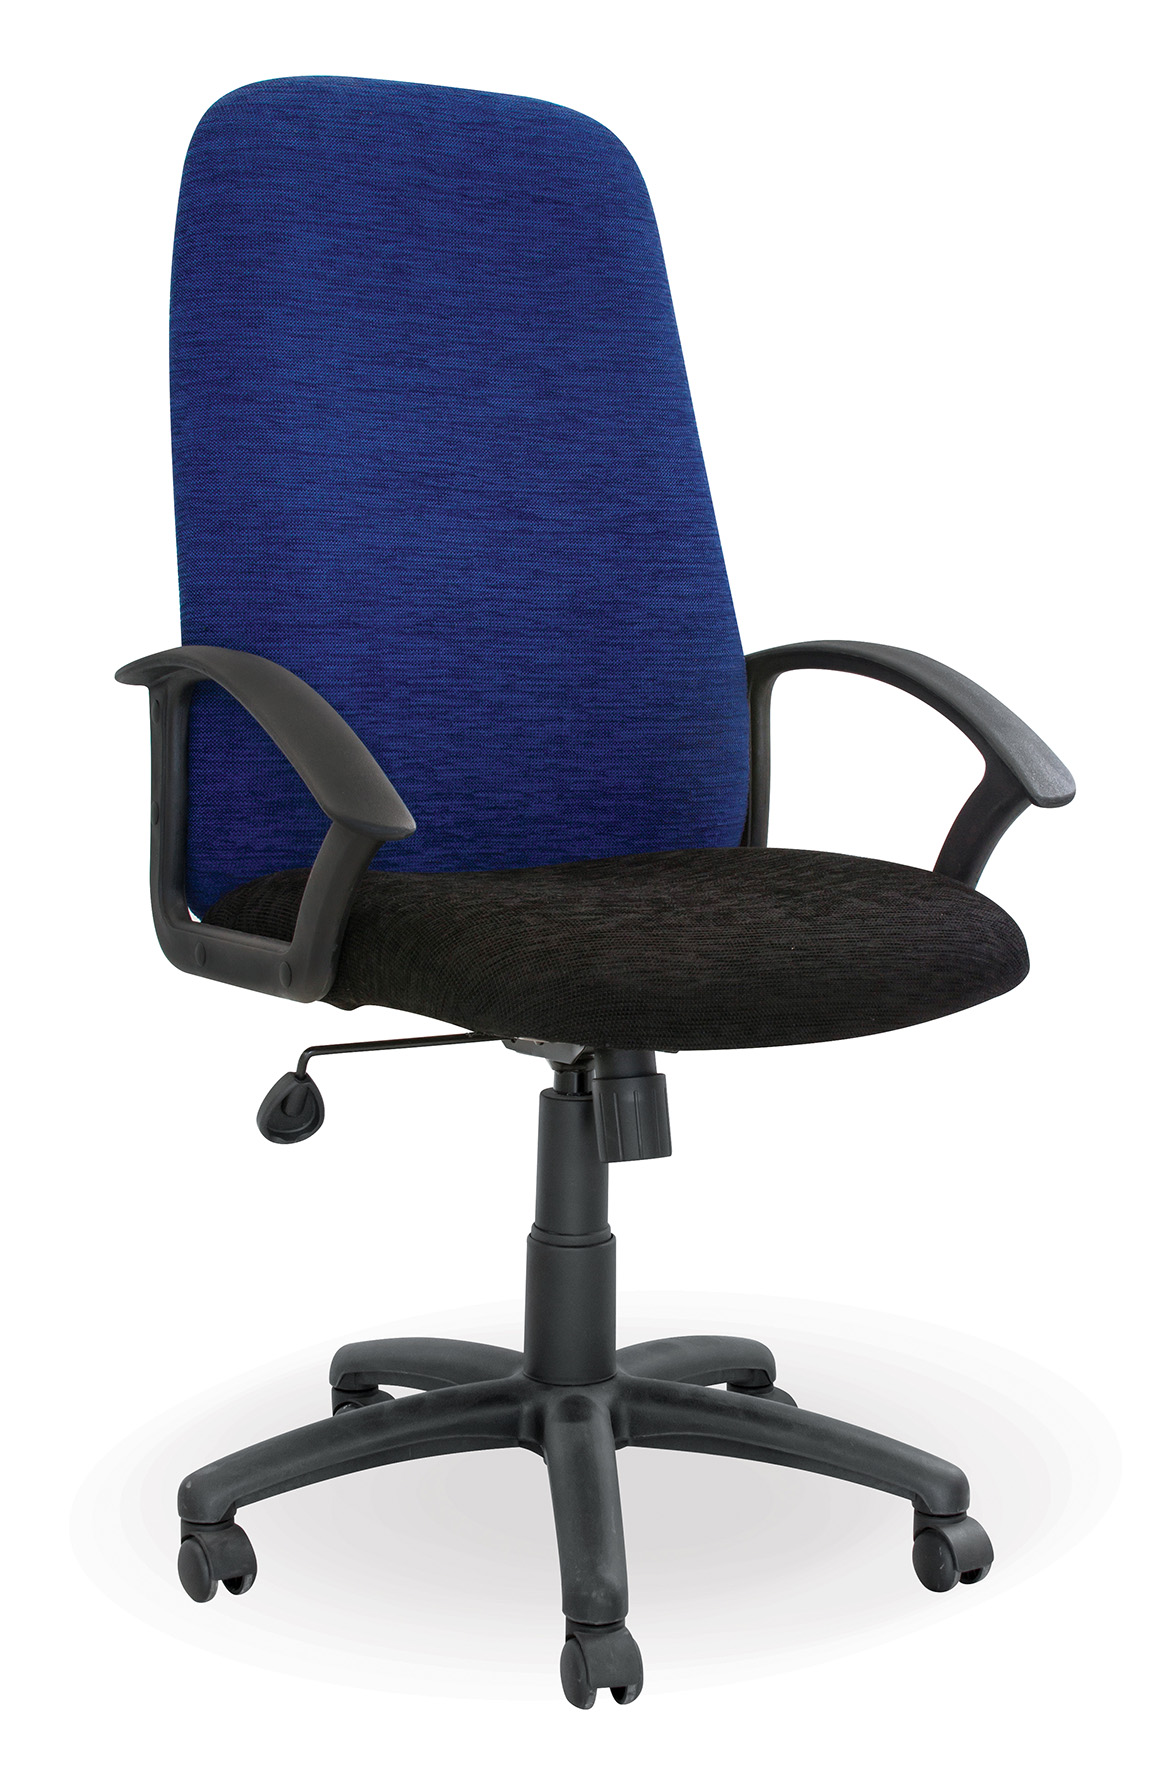 Office And Desk Chairs Of Top Quality At A Discounted Price